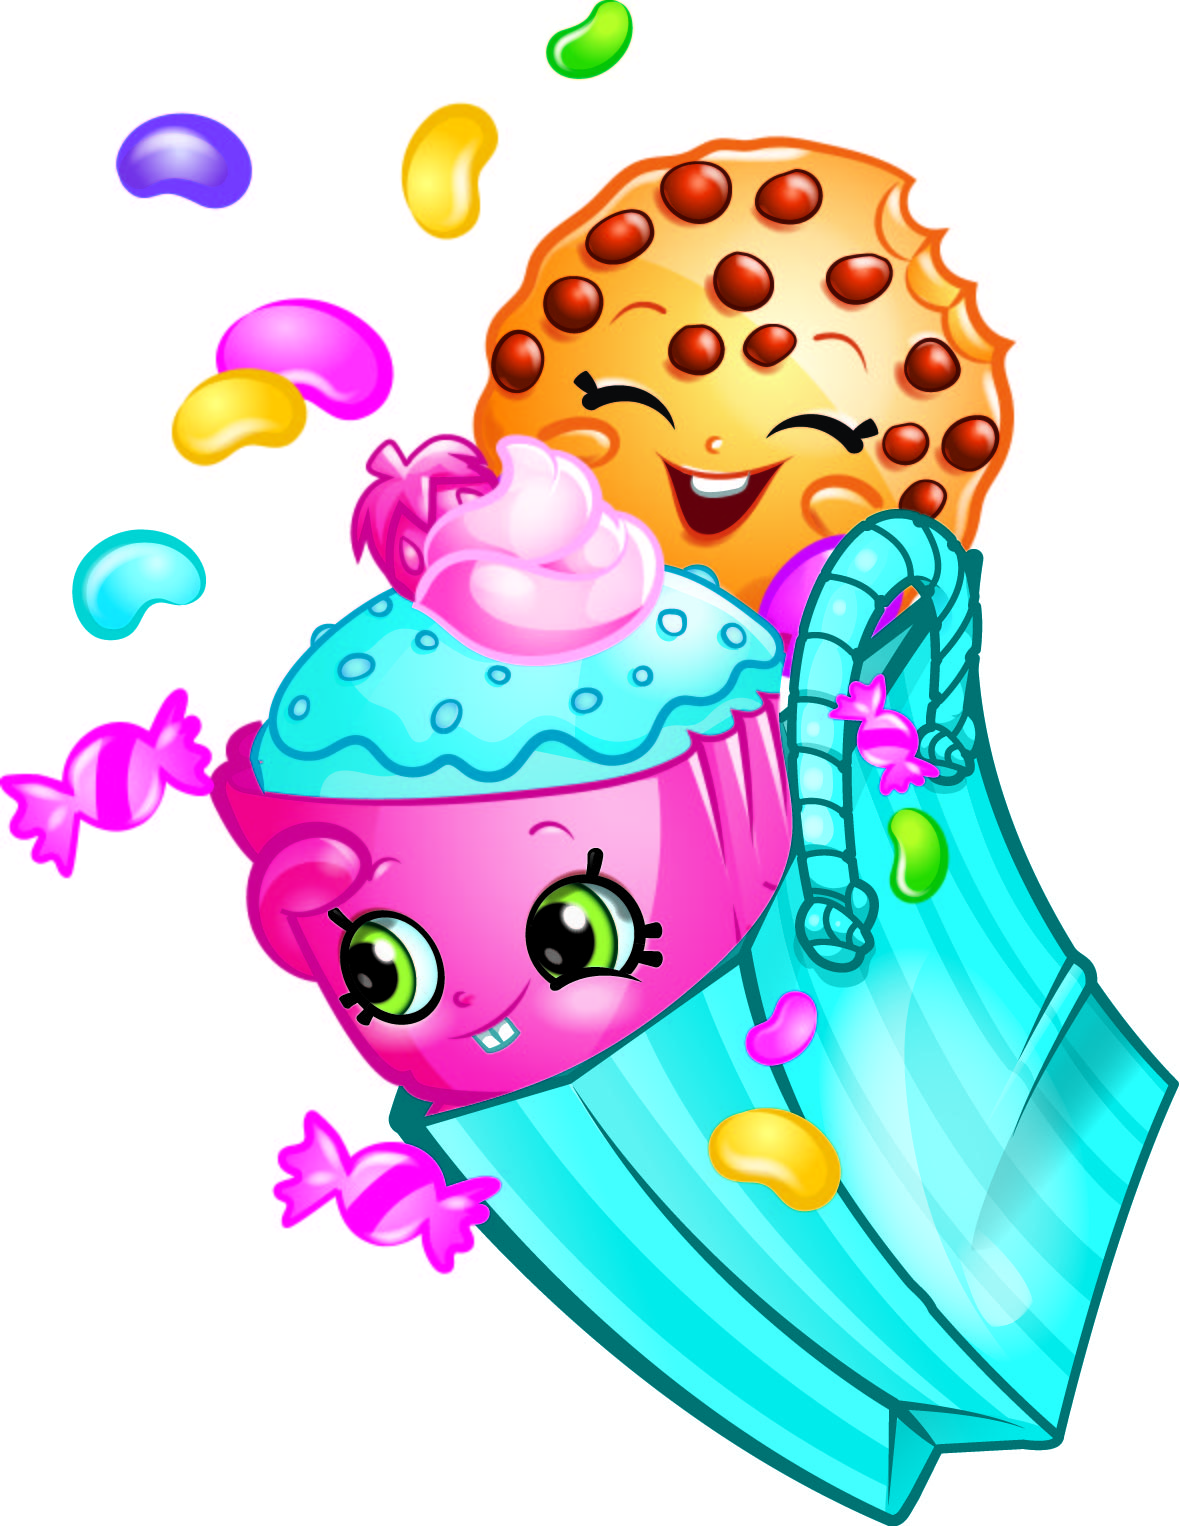 Shopkins characters wobbles clipart clipart transparent D'lish Donut | Boys, Cakes and Crochet clipart transparent